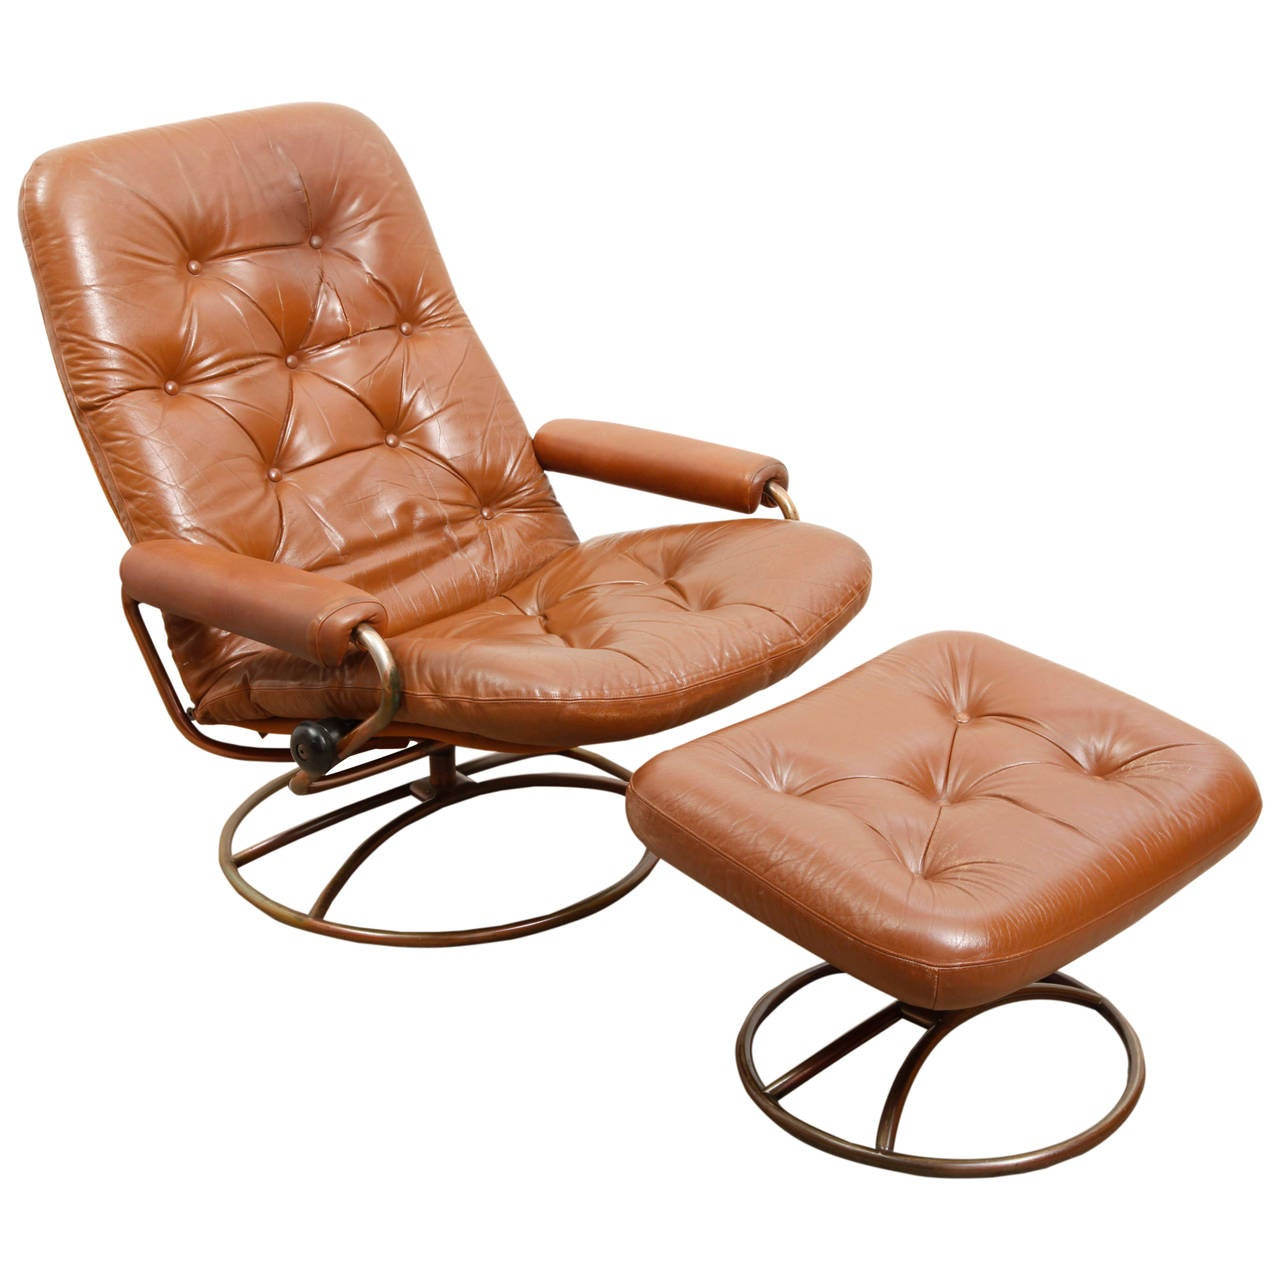 Bruno Mathsson Swivel Lounge Chair with Ottoman at 1stdibs